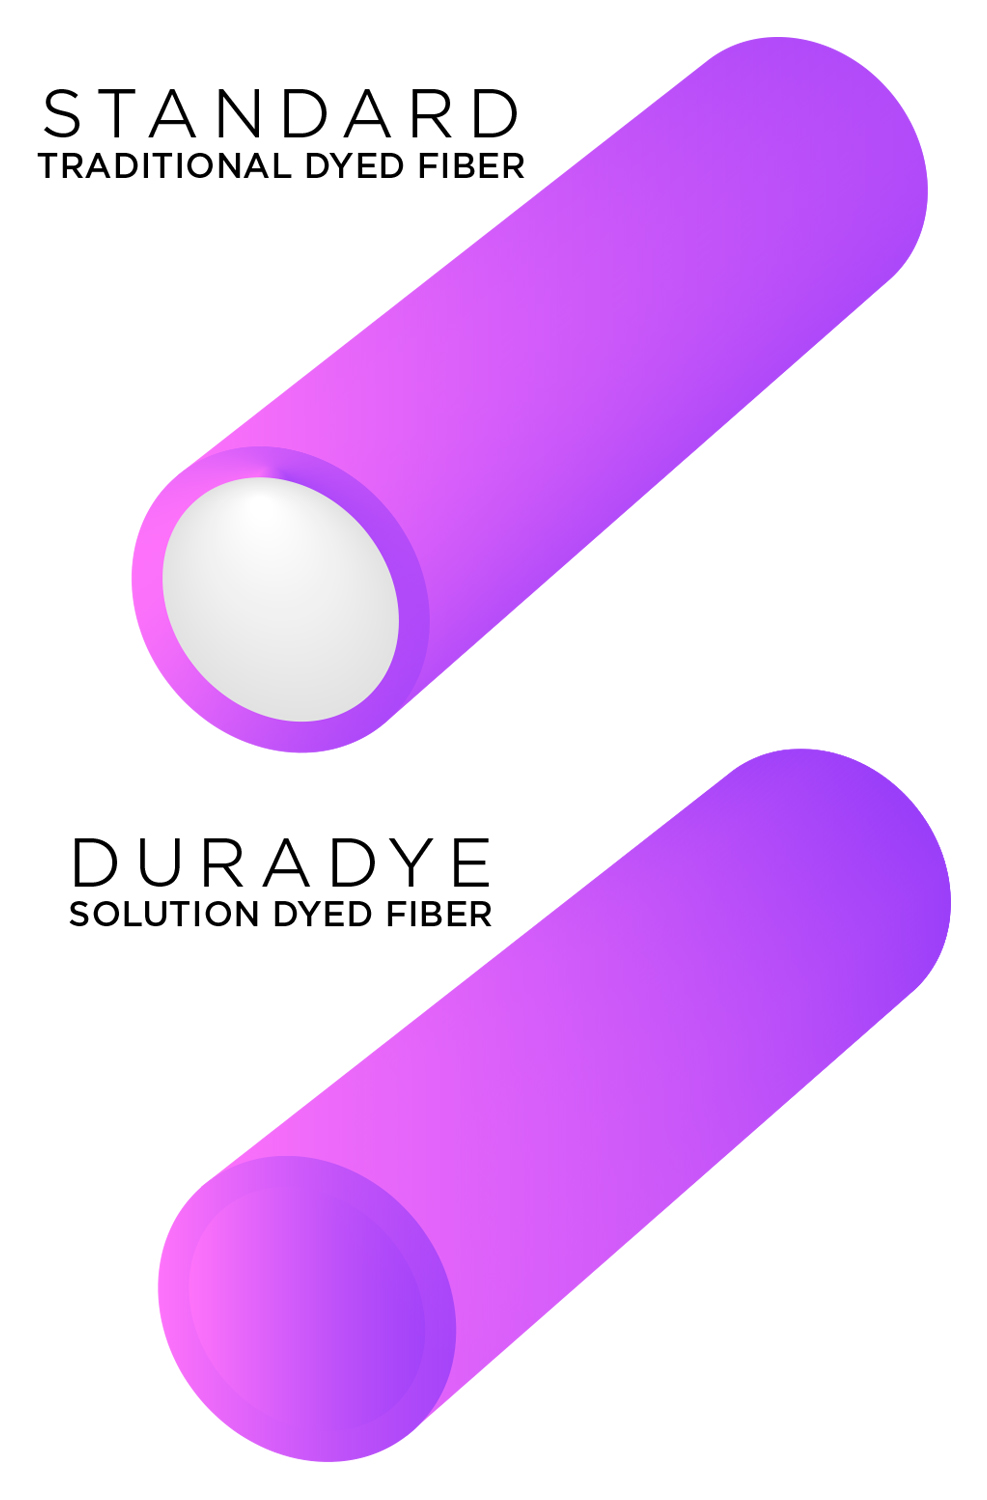 Duradye Fabric Illustrations Contoura.jpg